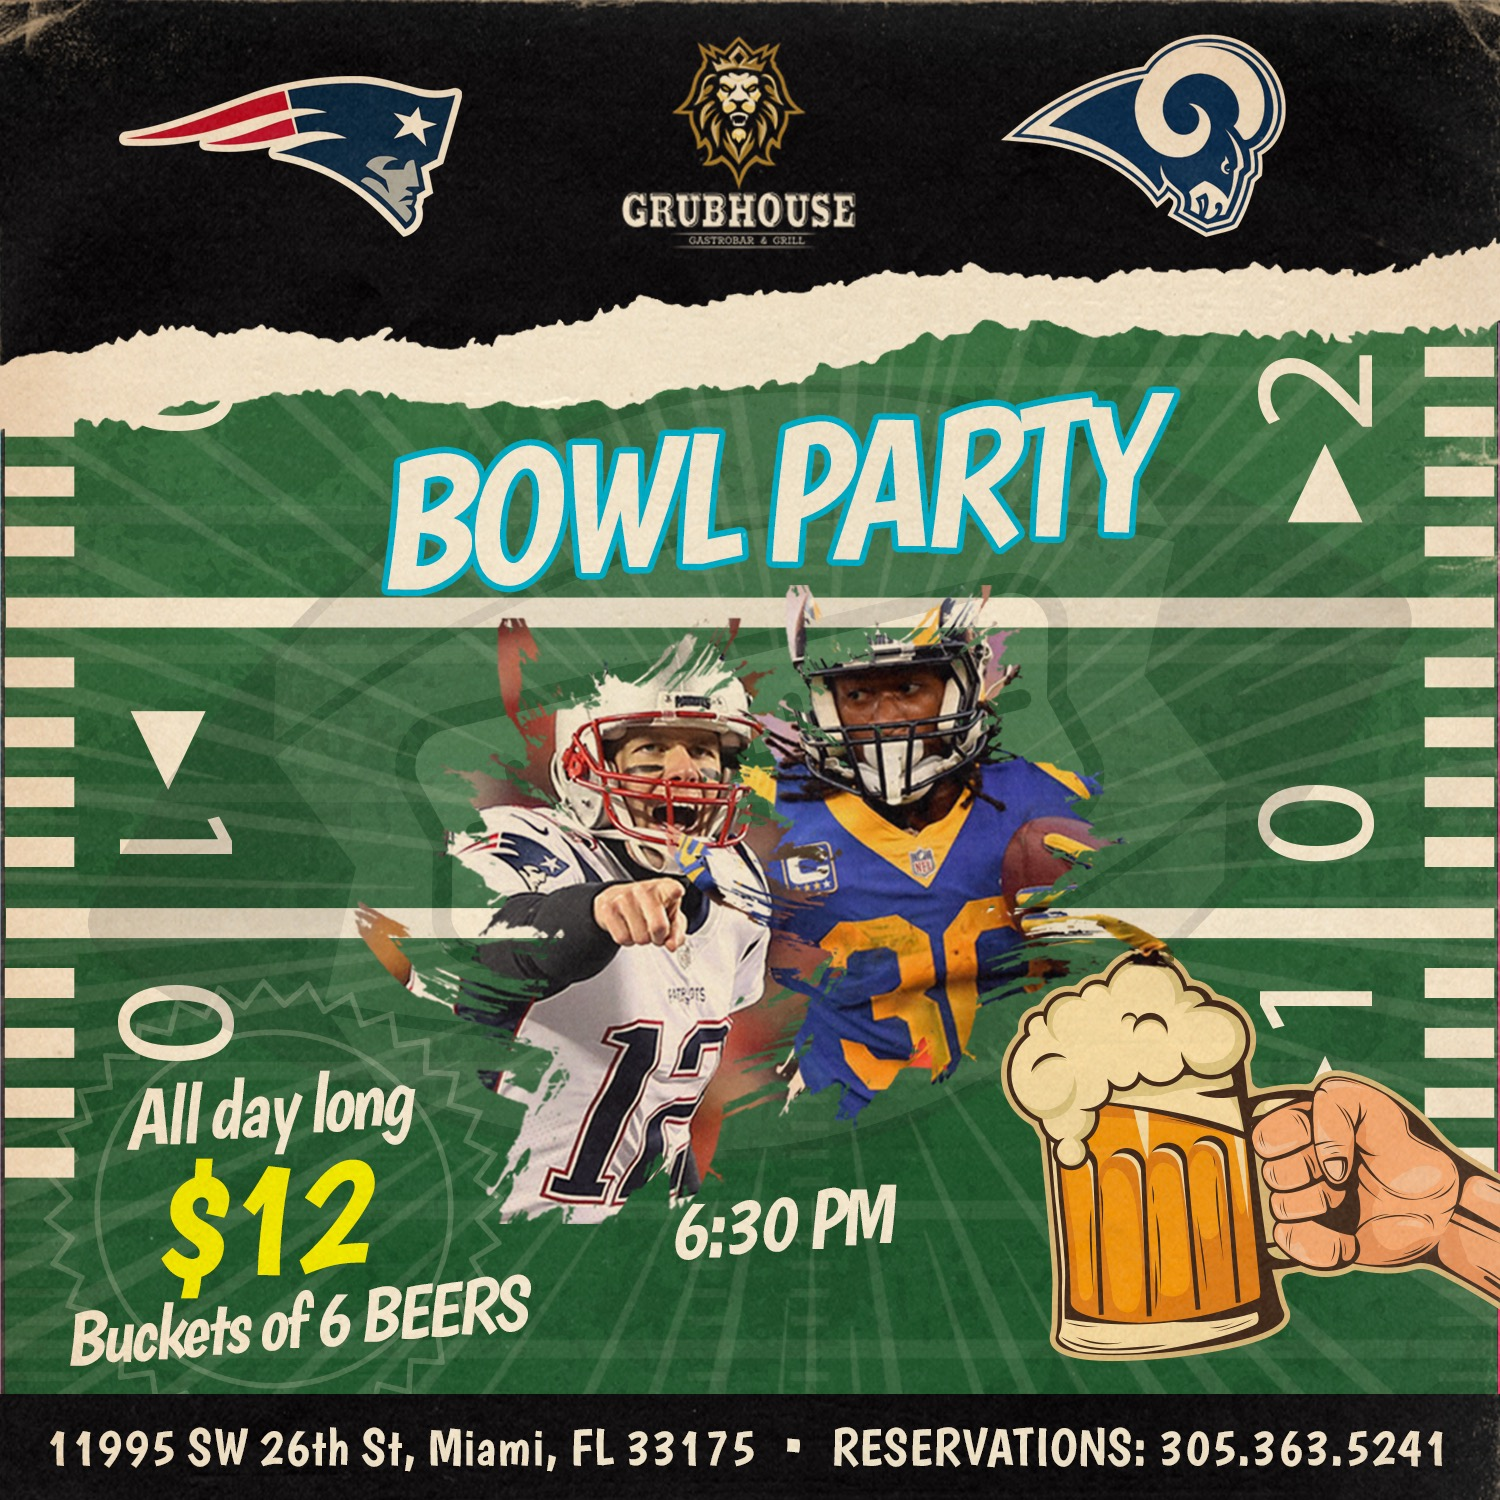 Don't miss out on the big game nor our bowl party deals this Sunday at GrubHouse Miami!  Enjoy $12 buckets with 6 beers and 2 for 1 draft beers! For reservations, please call 305.363.5241.  We'll see you on game day!